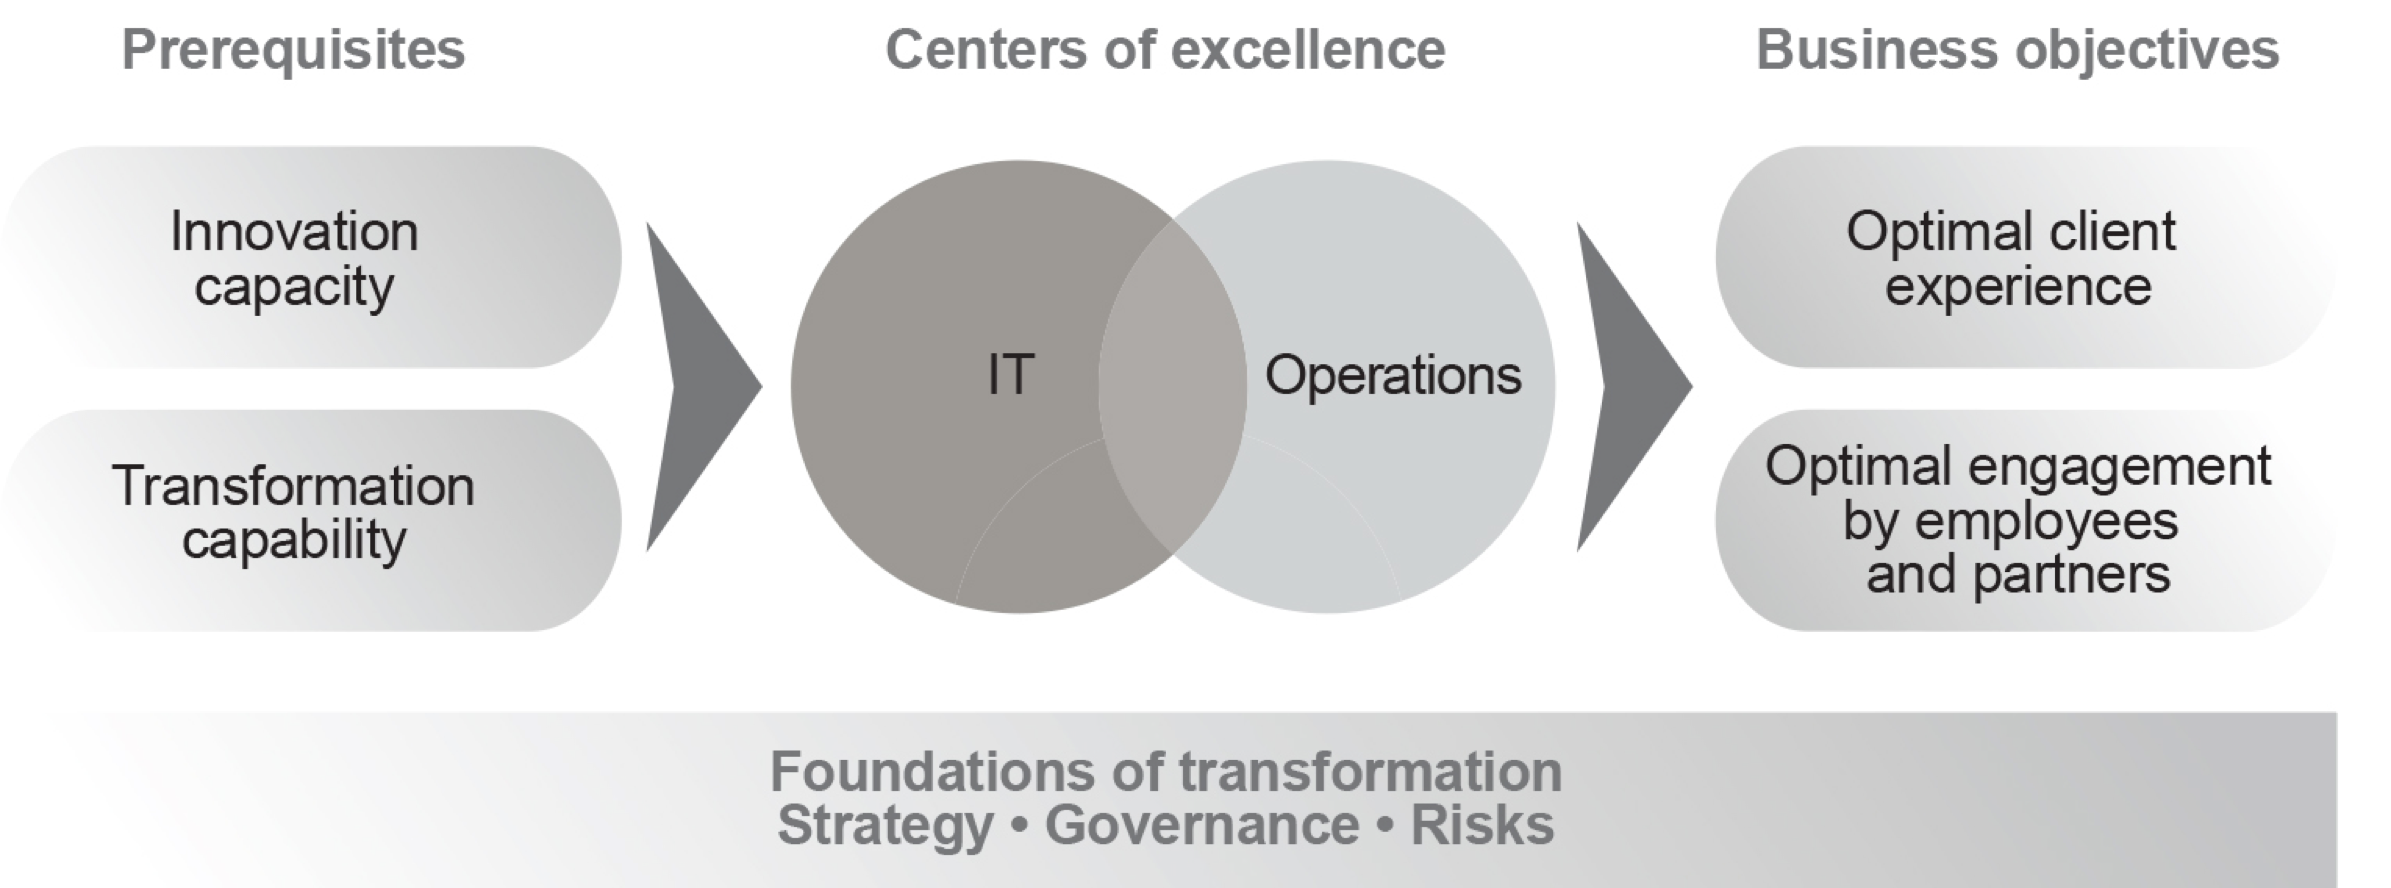 prerequisites, centers of excellence, business objectives between IT and Operations - graph